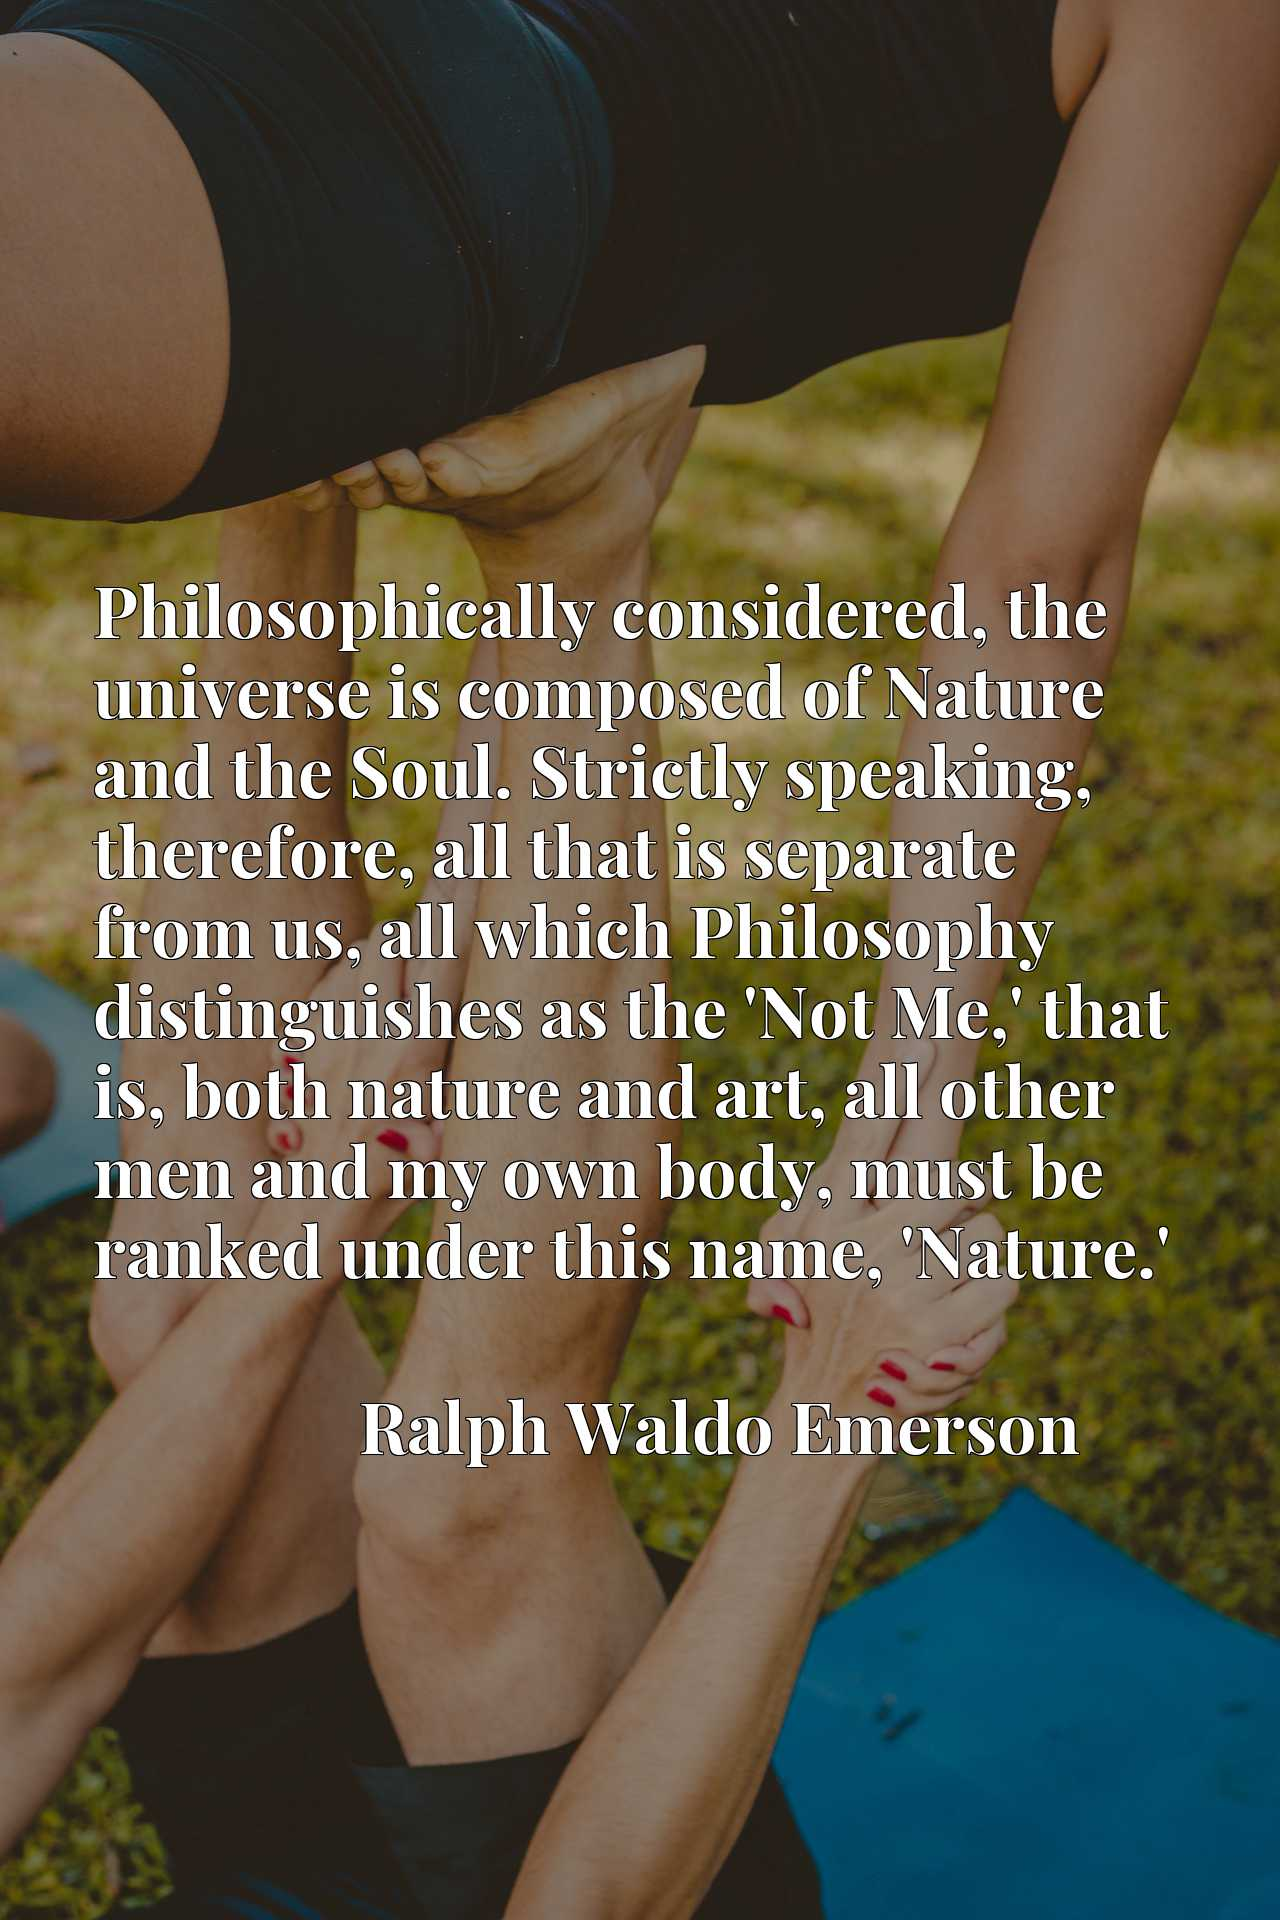 Philosophically considered, the universe is composed of Nature and the Soul. Strictly speaking, therefore, all that is separate from us, all which Philosophy distinguishes as the 'Not Me,' that is, both nature and art, all other men and my own body, must be ranked under this name, 'Nature.'